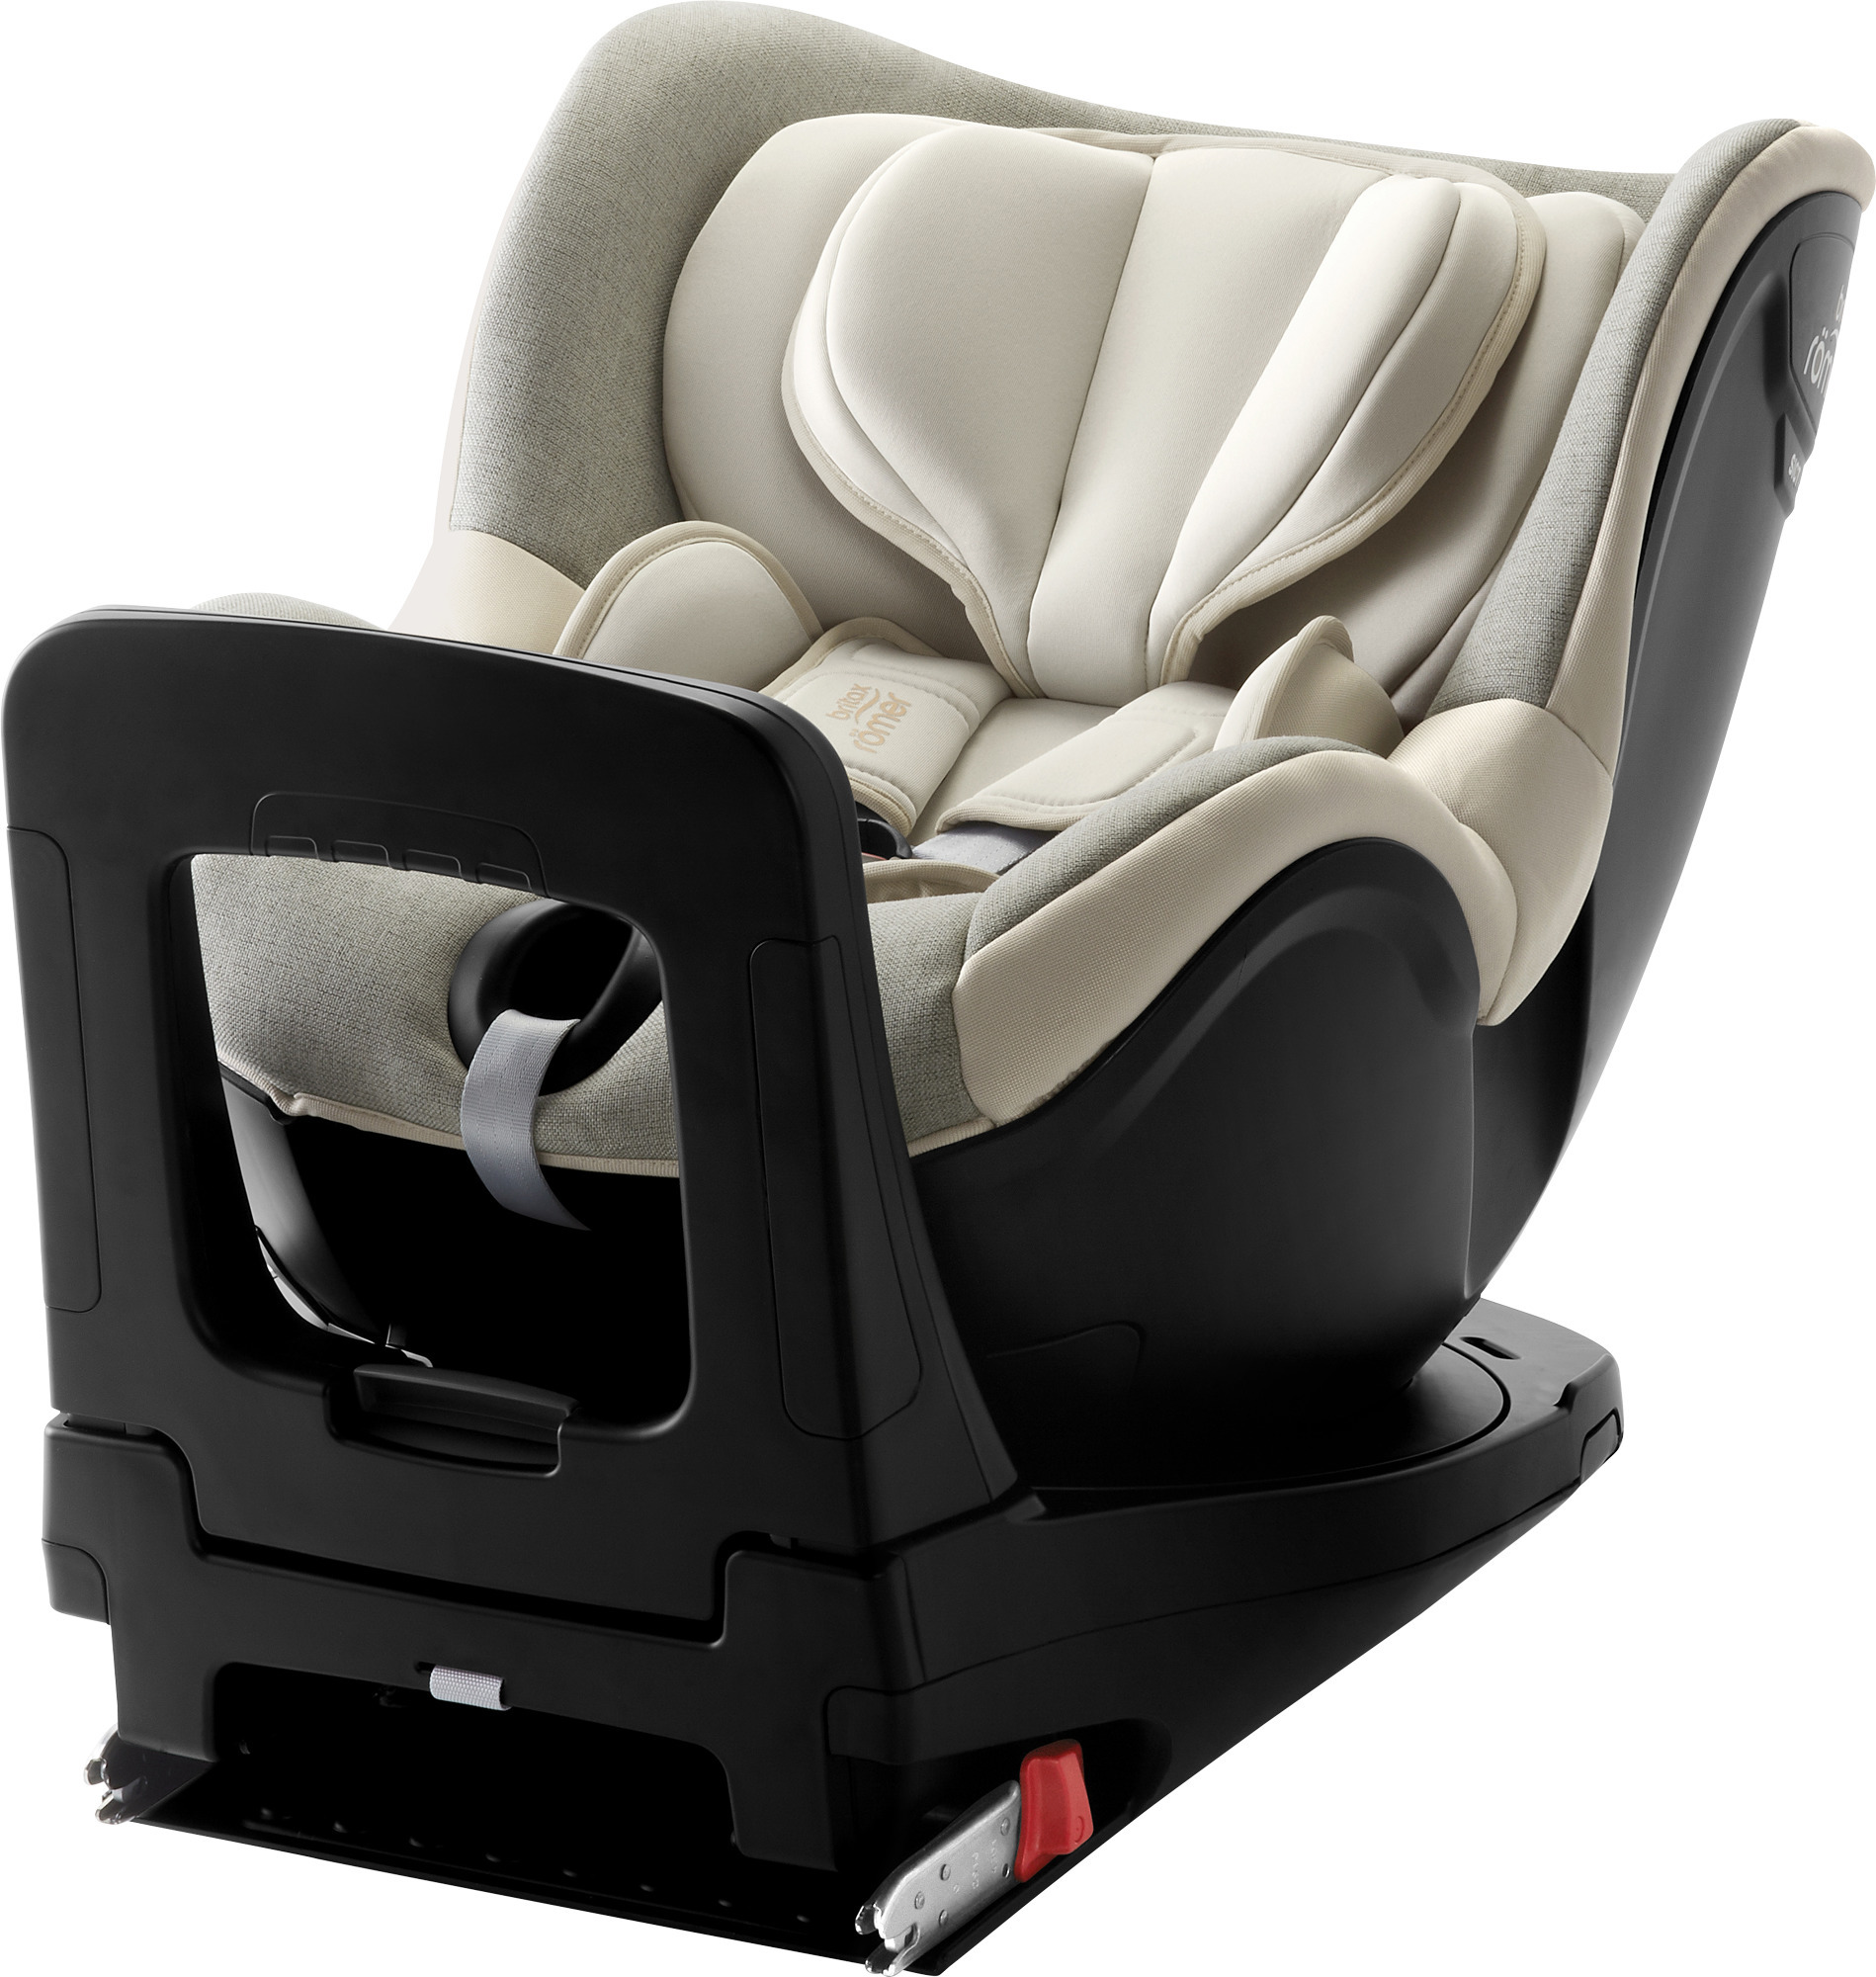 britax r mer dualfix i size turvaistuin 2018 40 cm 105 cm sand marble turvaistuimet 0. Black Bedroom Furniture Sets. Home Design Ideas